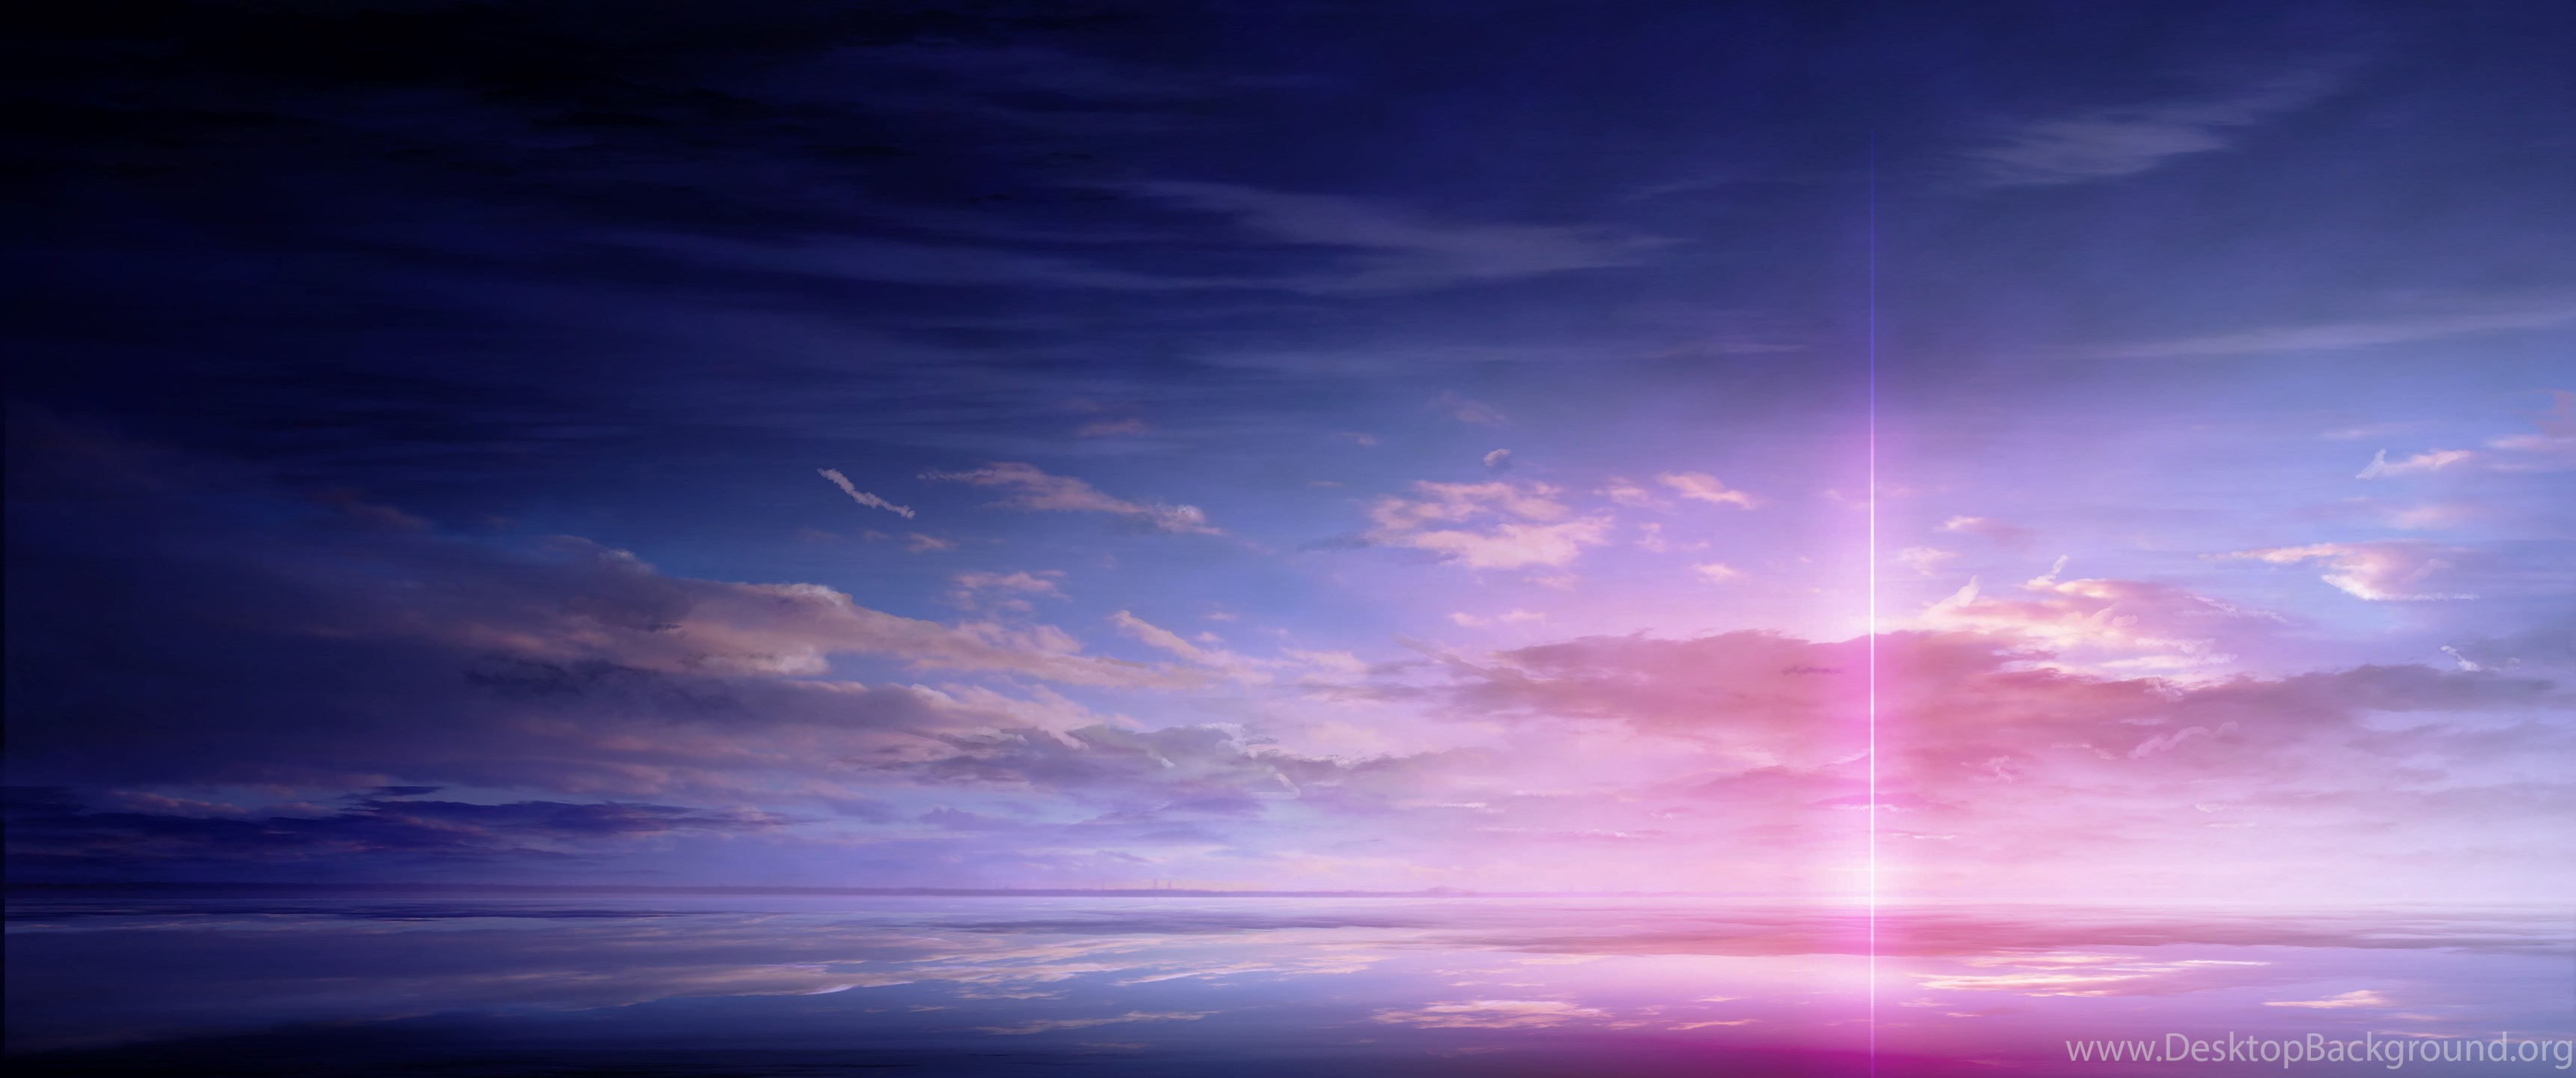 Hp Wallpaper Hd 1920x1080 Anime Scan Landscape Sky Cloud Beautiful Light Color